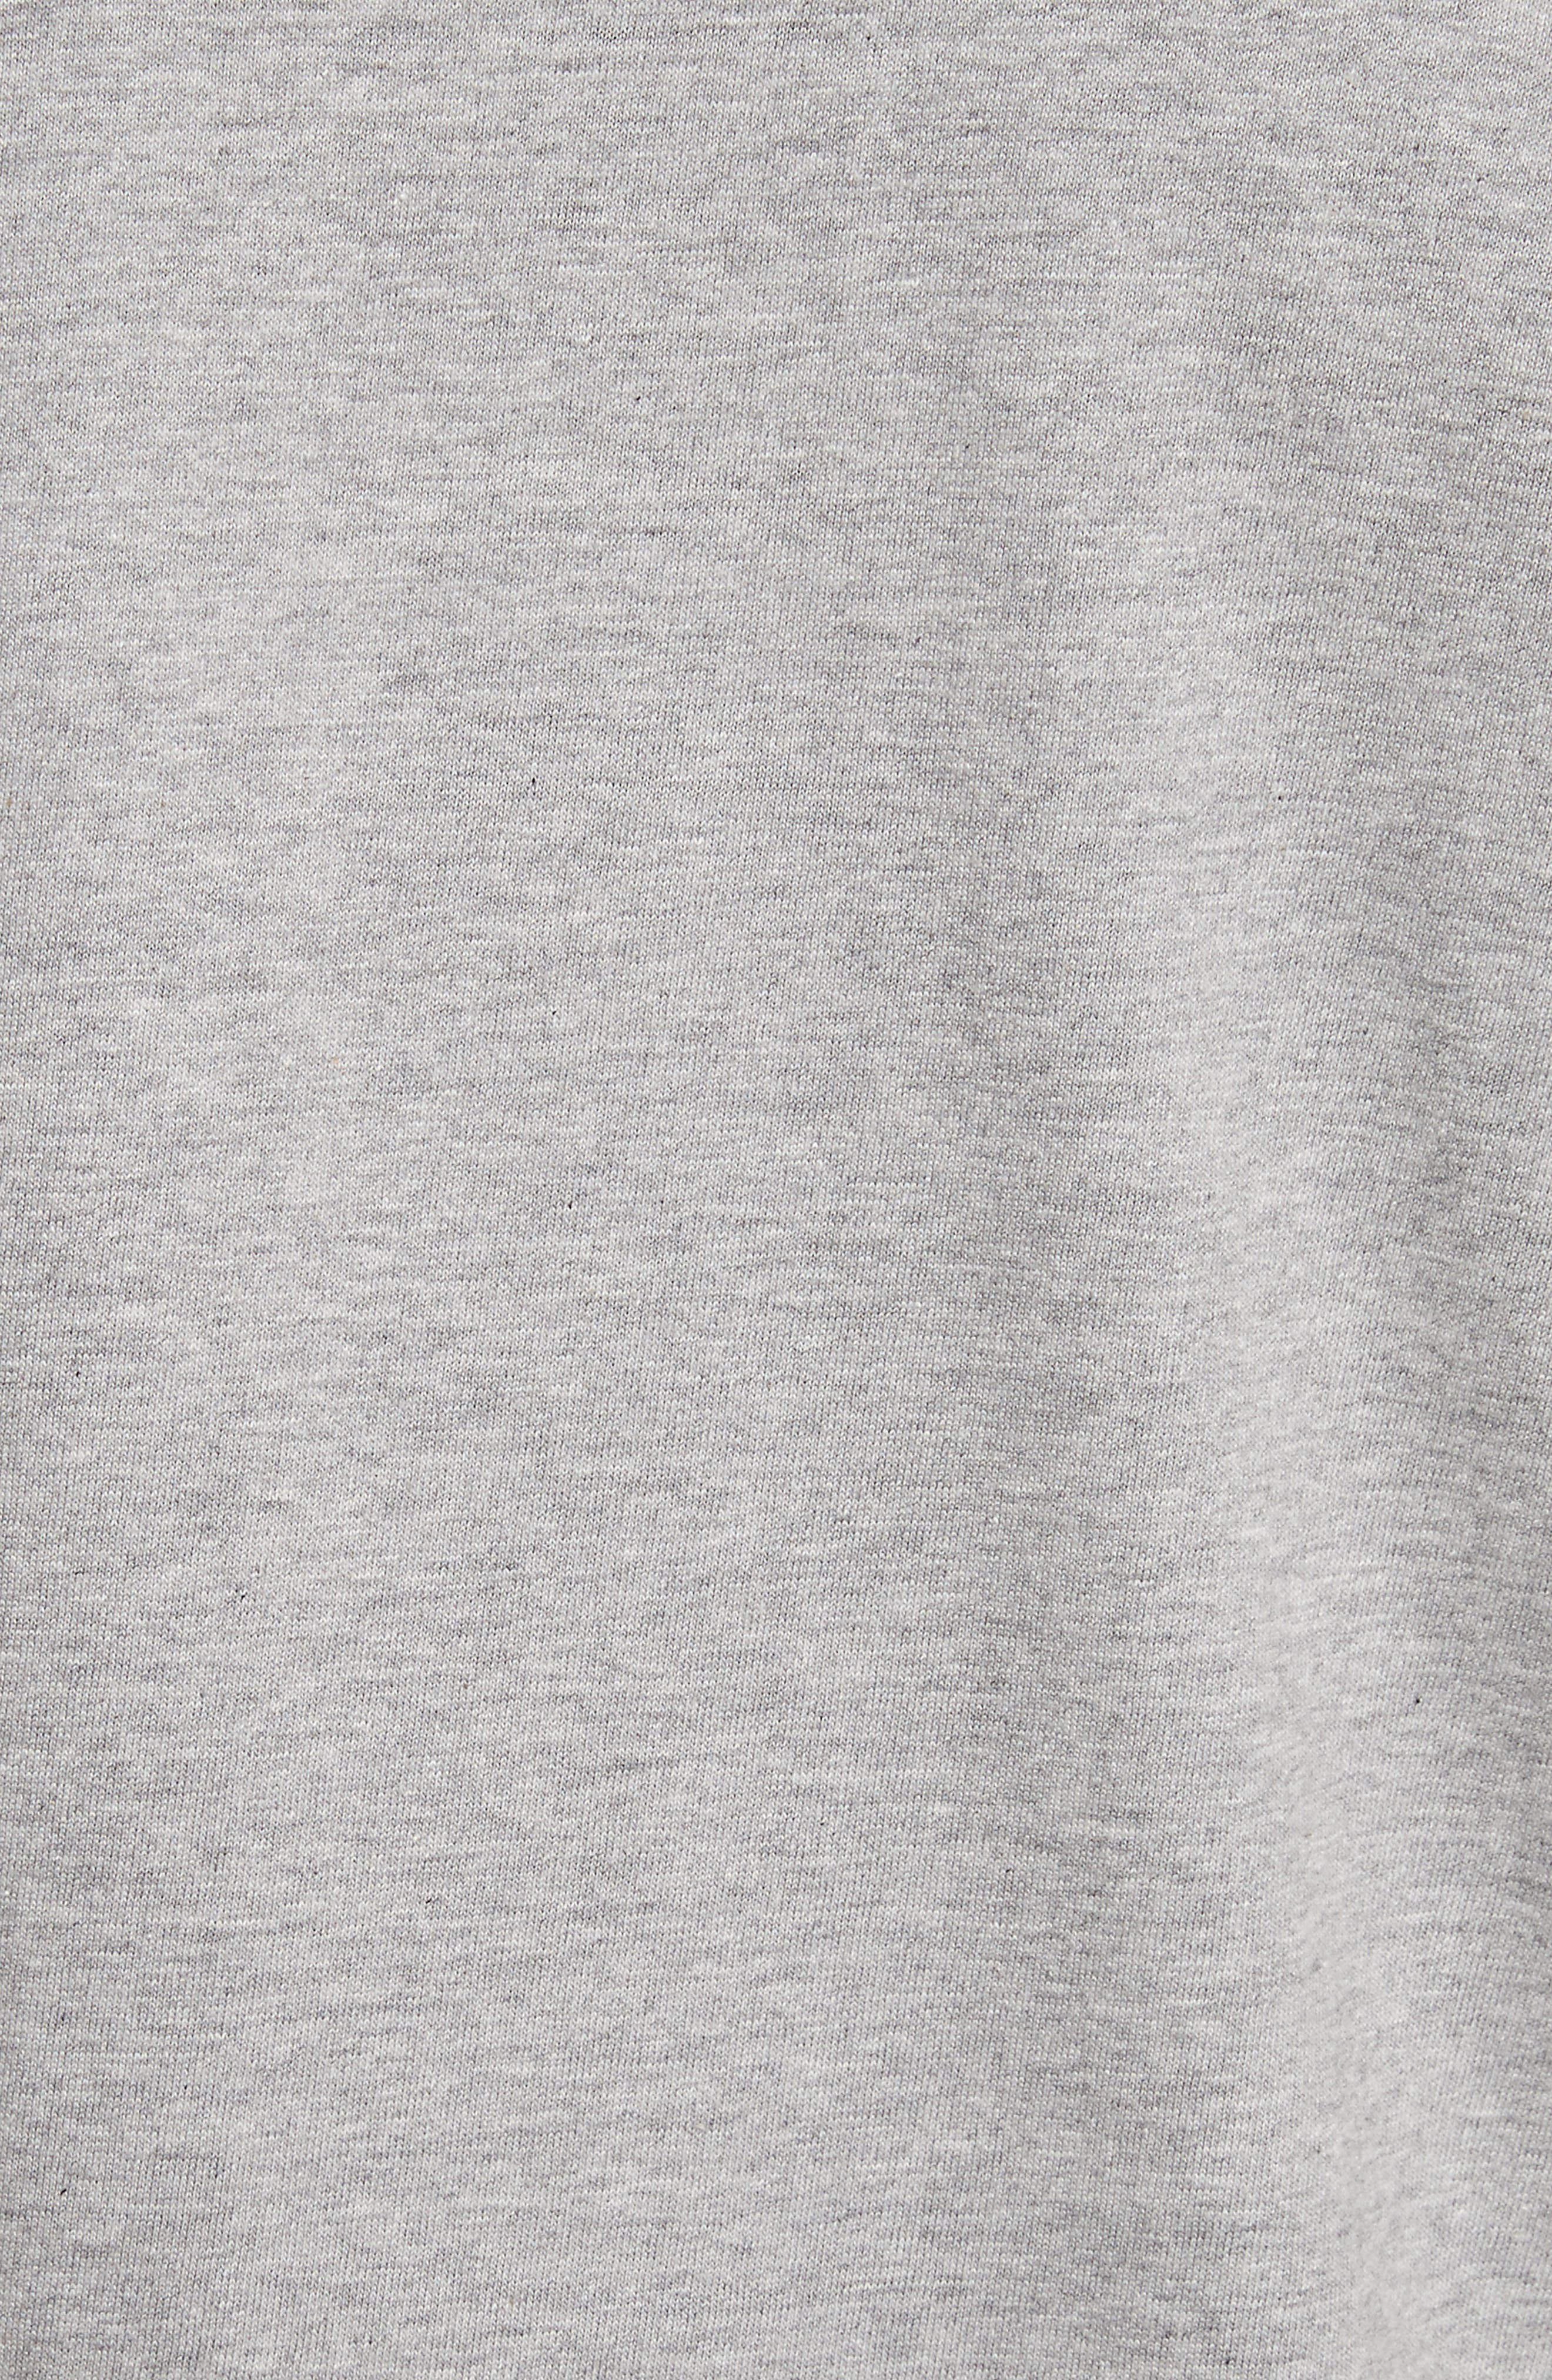 PLAY Upside Down Graphic T-Shirt,                             Alternate thumbnail 5, color,                             Grey